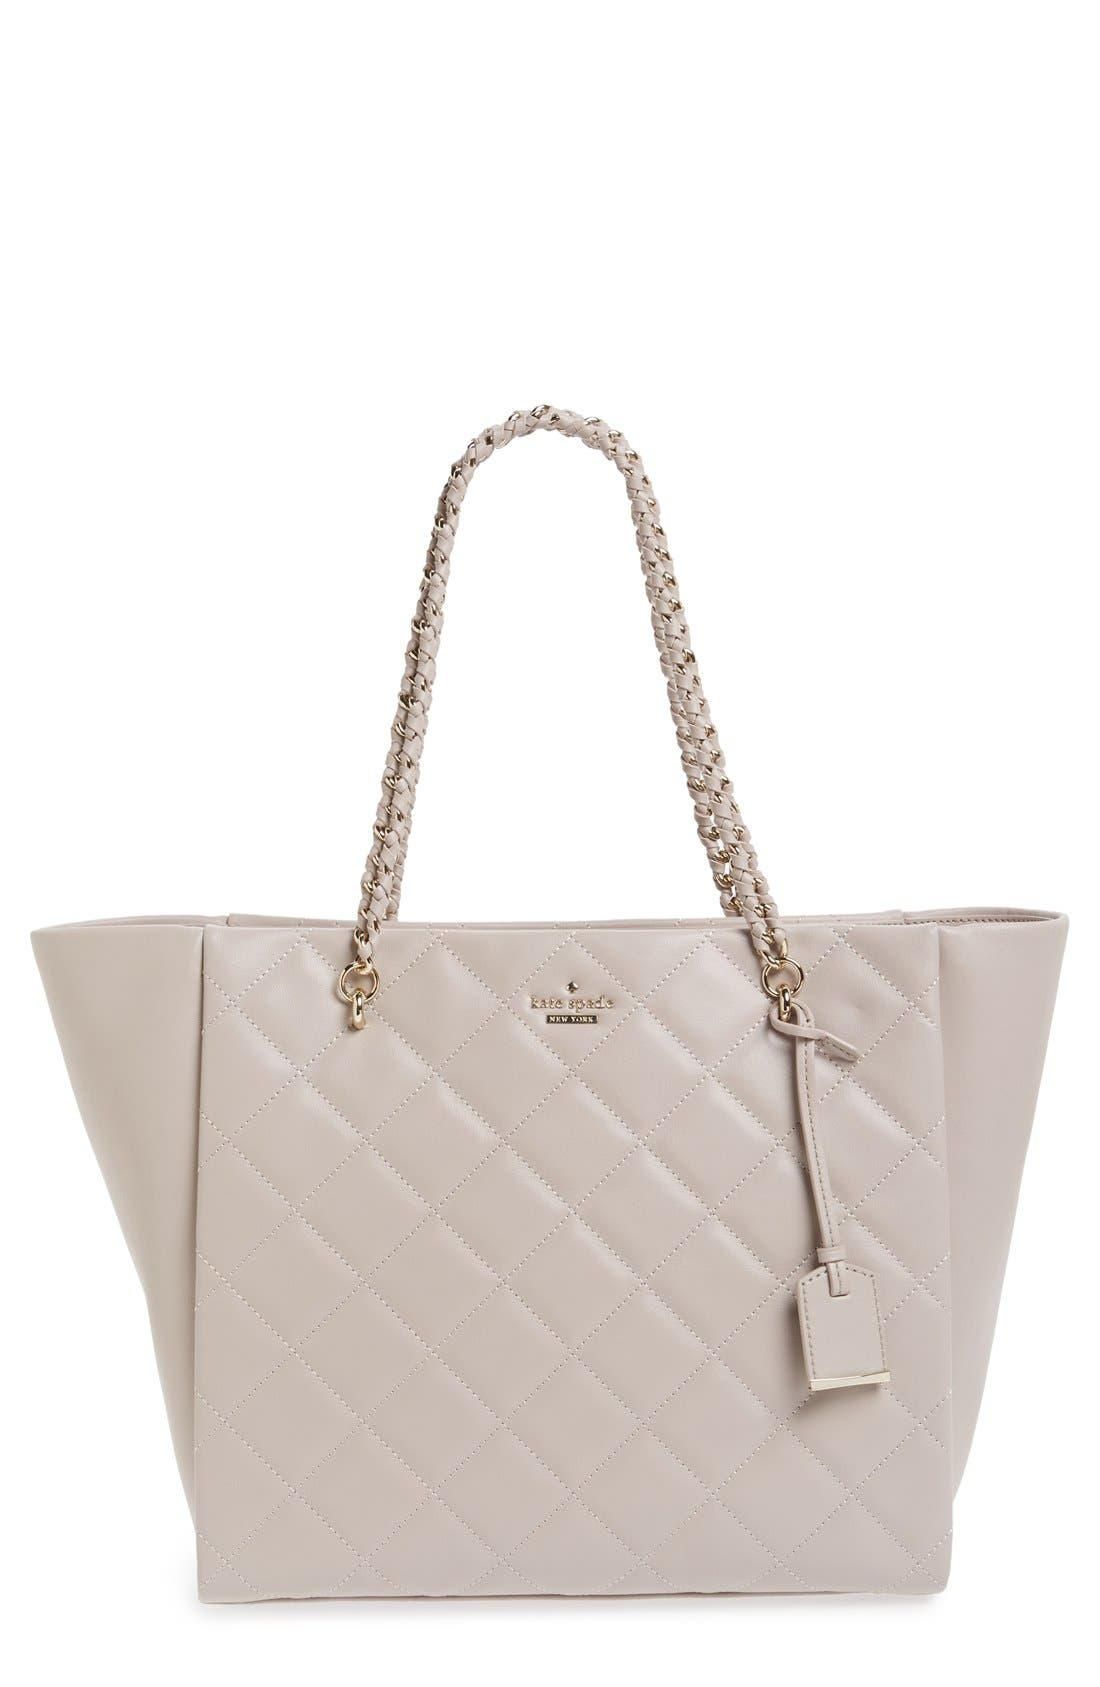 Alternate Image 1 Selected - kate spade new york 'emerson place - francelle' quilted leather tote